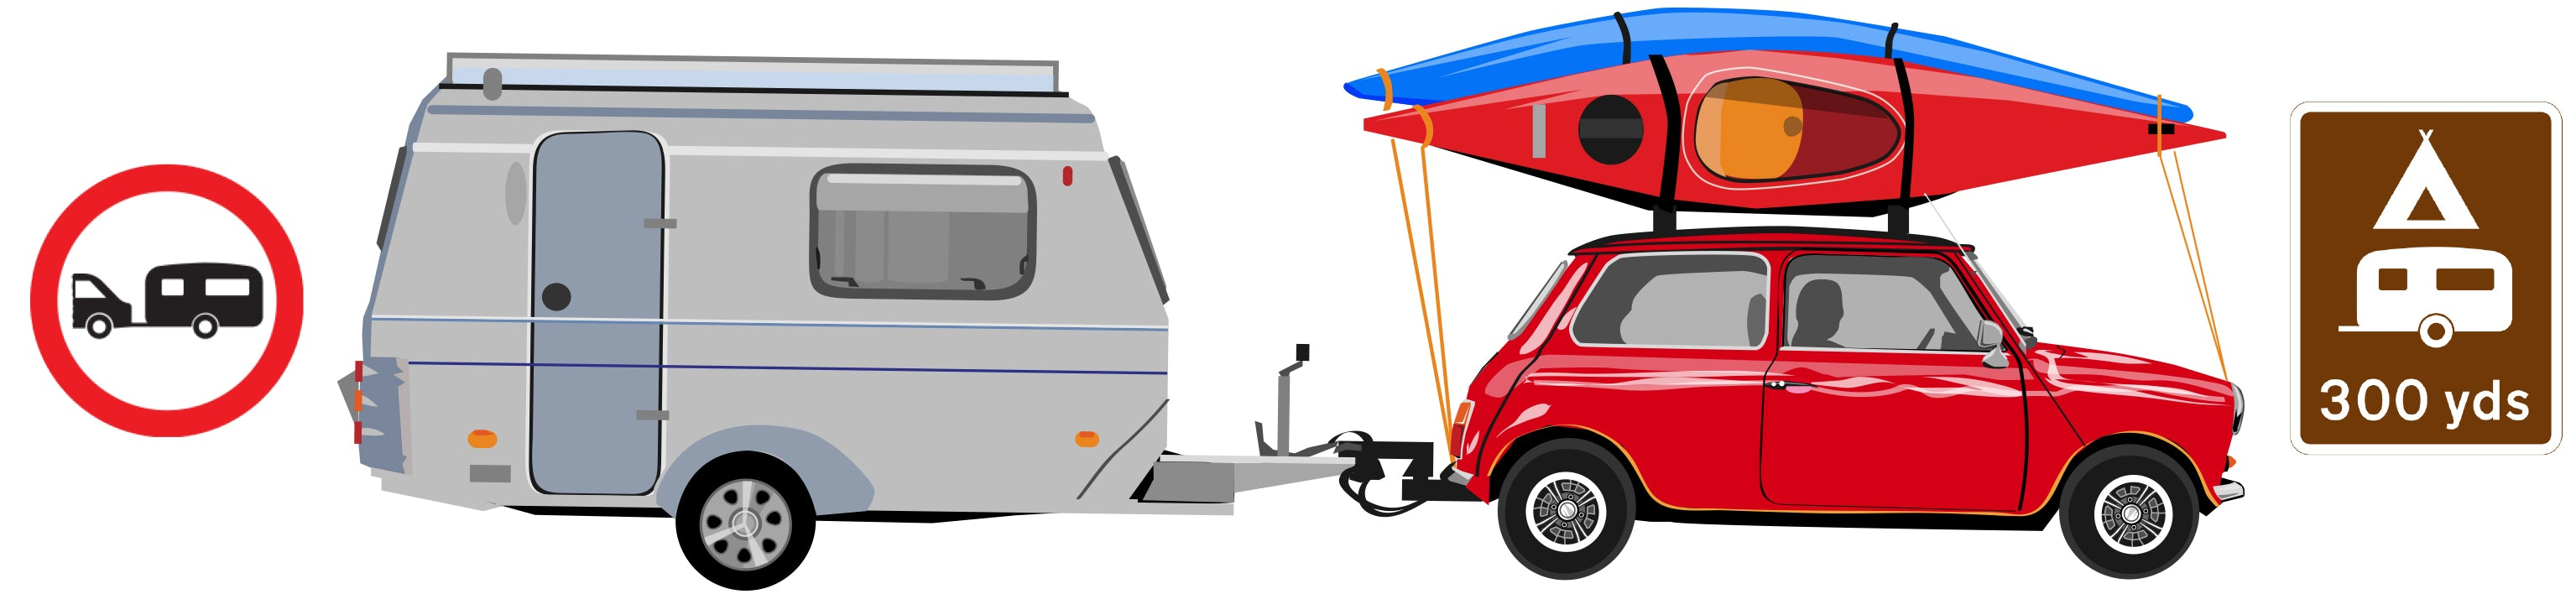 Illustration of motorhome